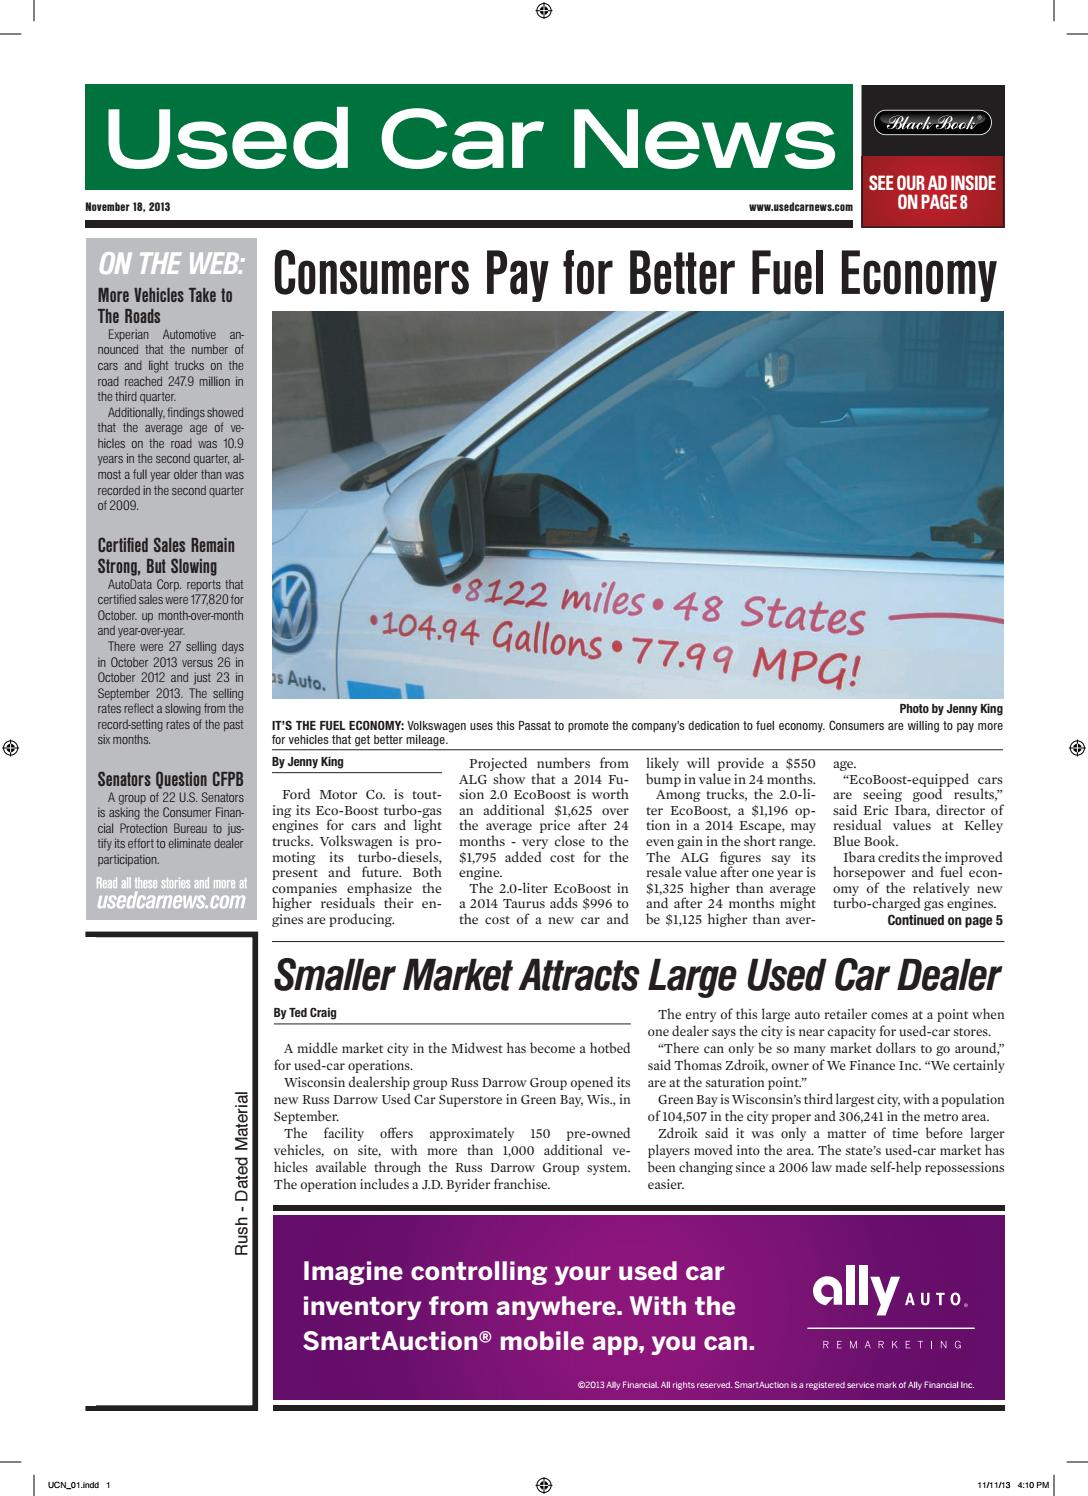 Mobile Auto Auction Smartauction Mobile App Smartauction Ally >> Used Car News 11 18 13